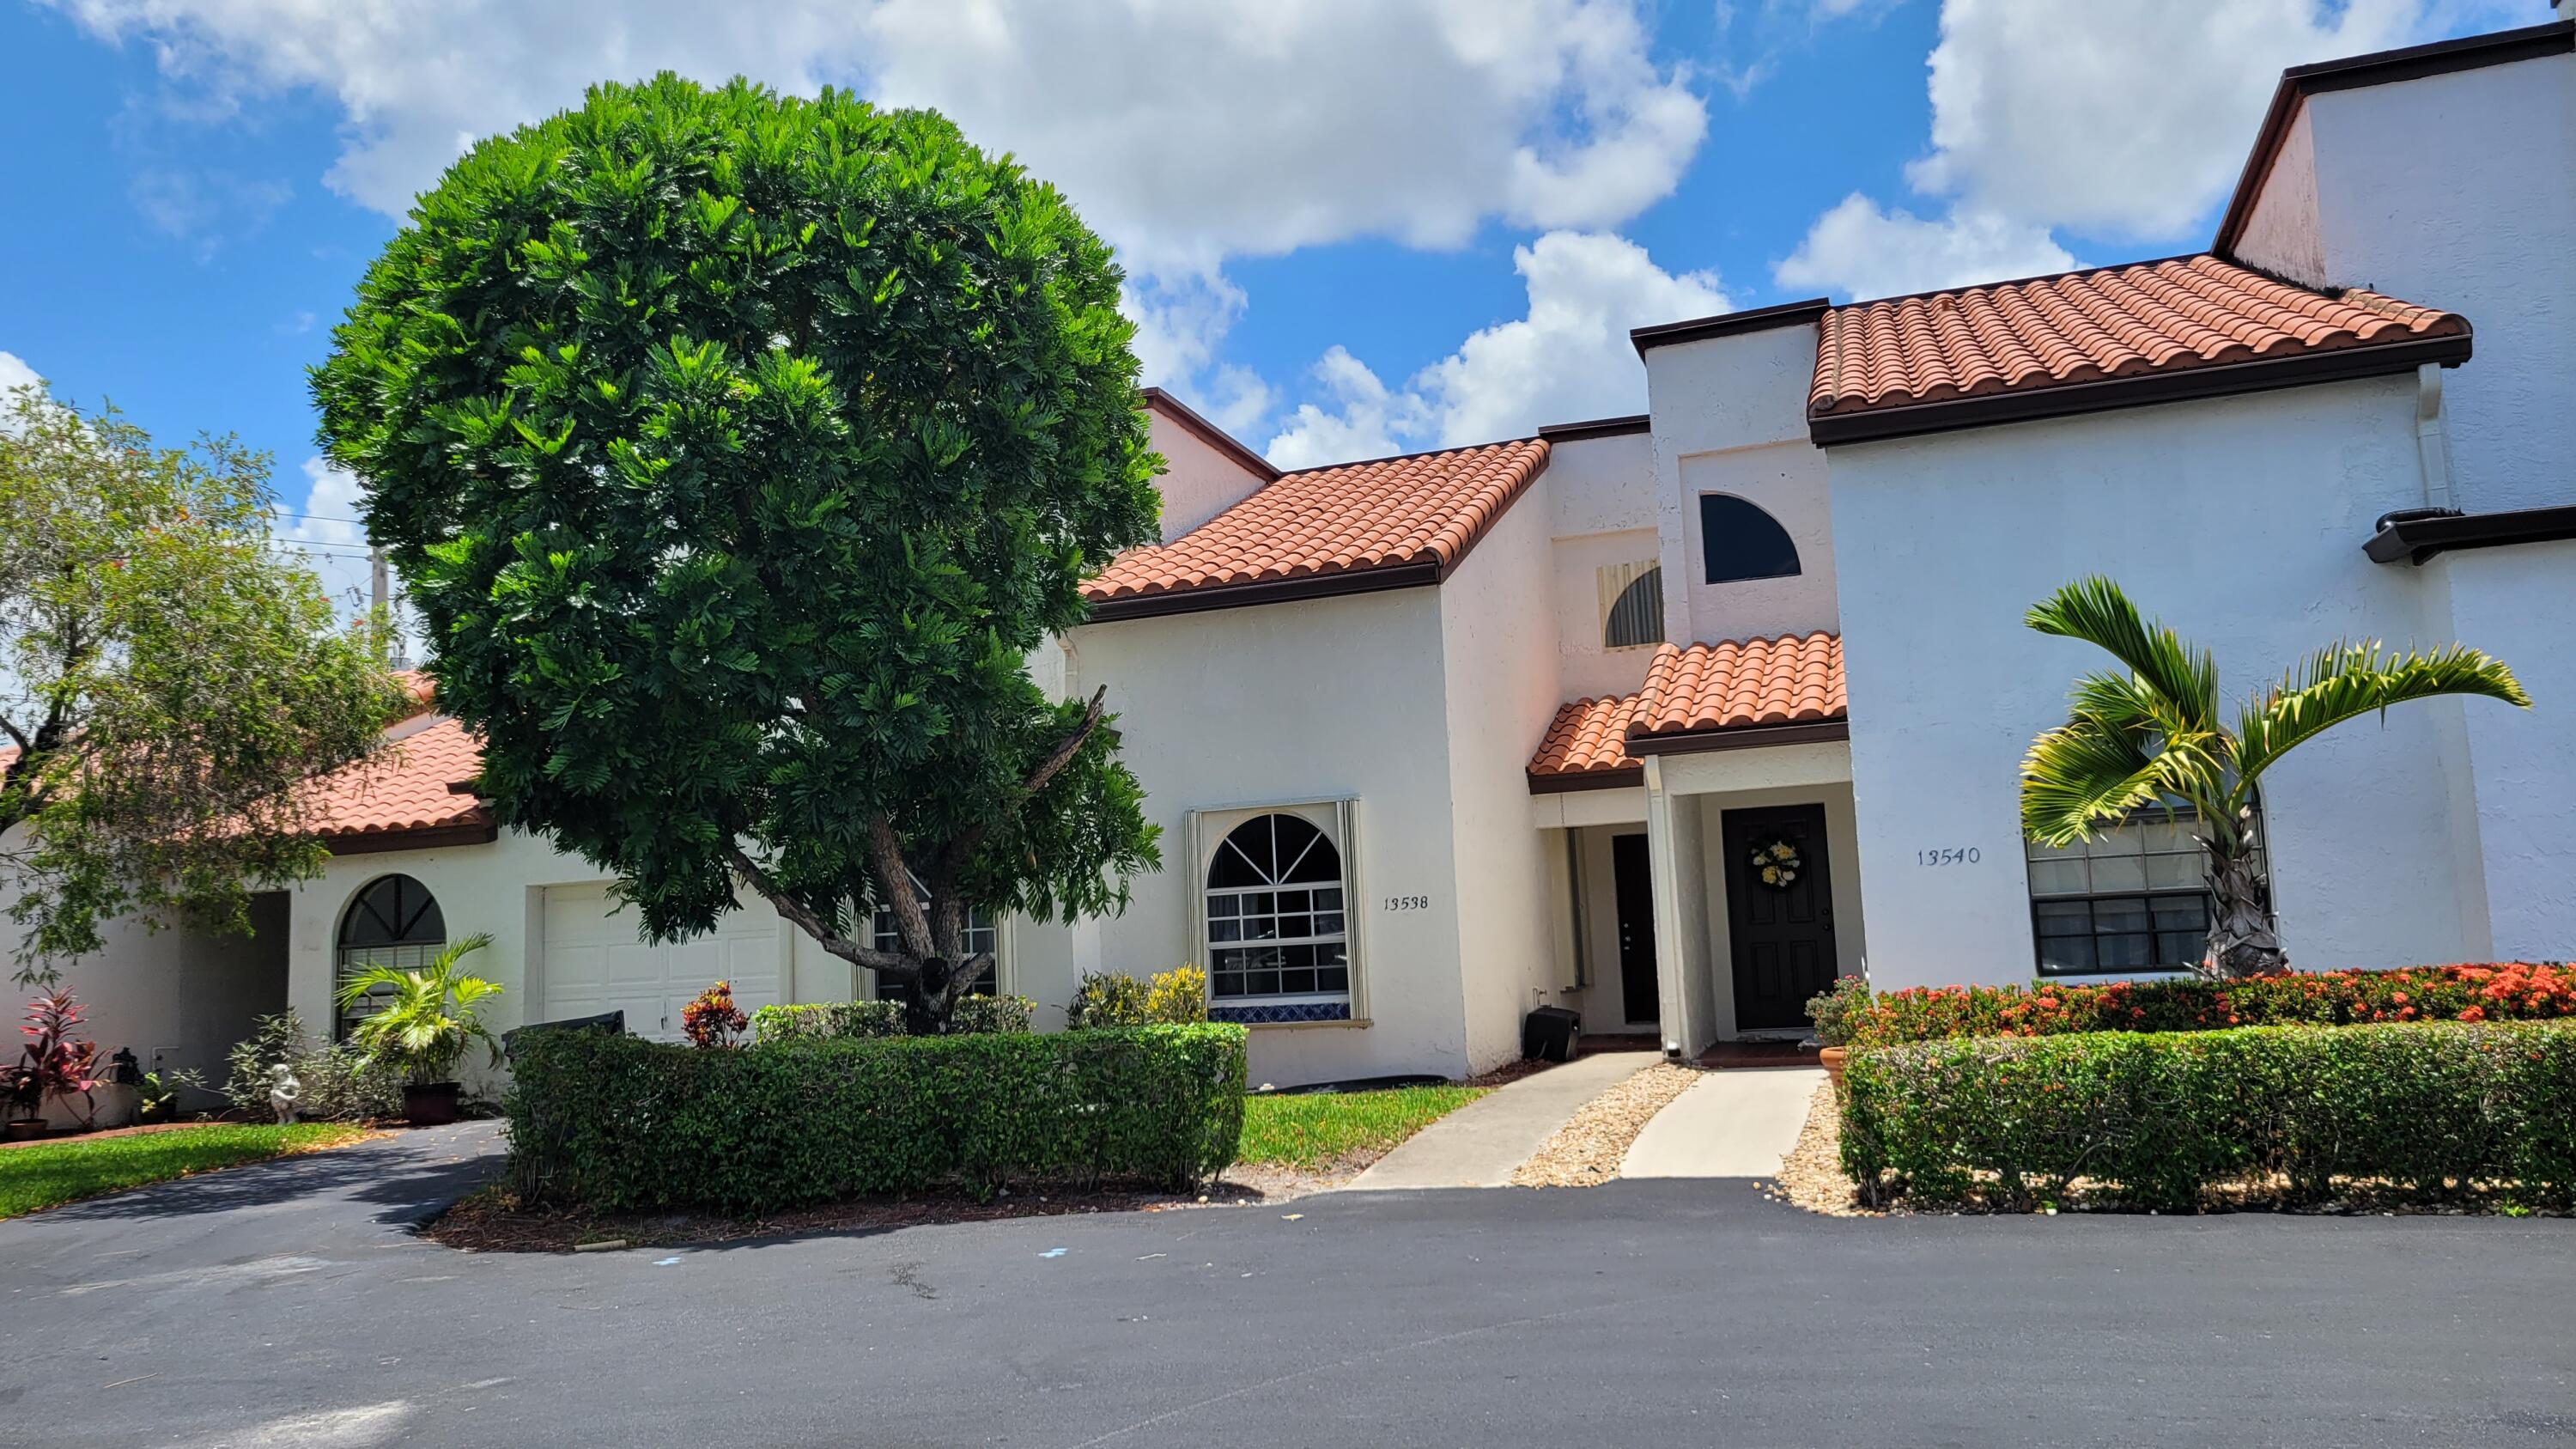 13538  Fountain View Boulevard  For Sale 10721979, FL